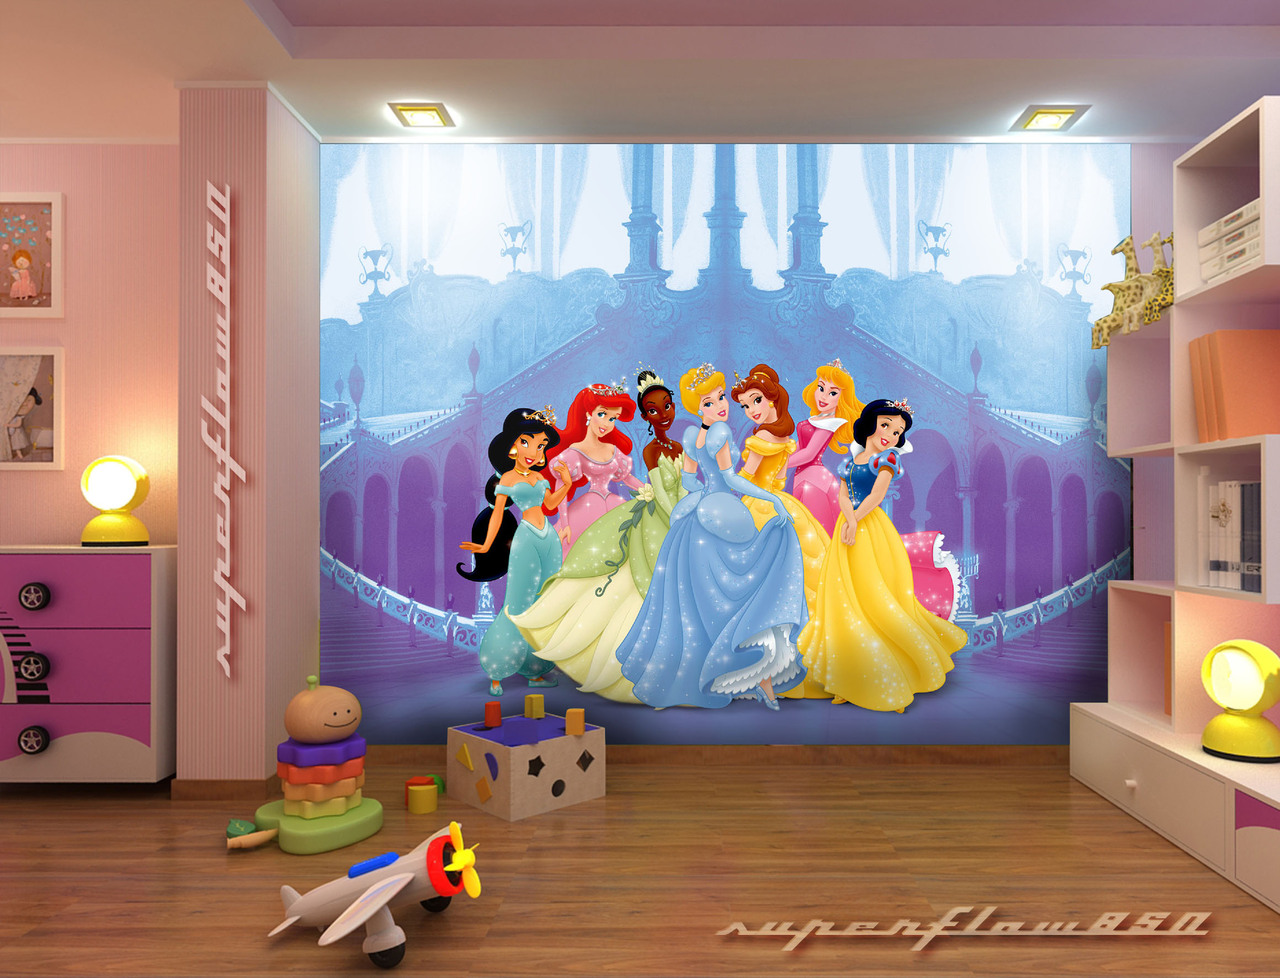 Disney wall murals 2017 grasscloth wallpaper for Childrens wall mural wallpaper